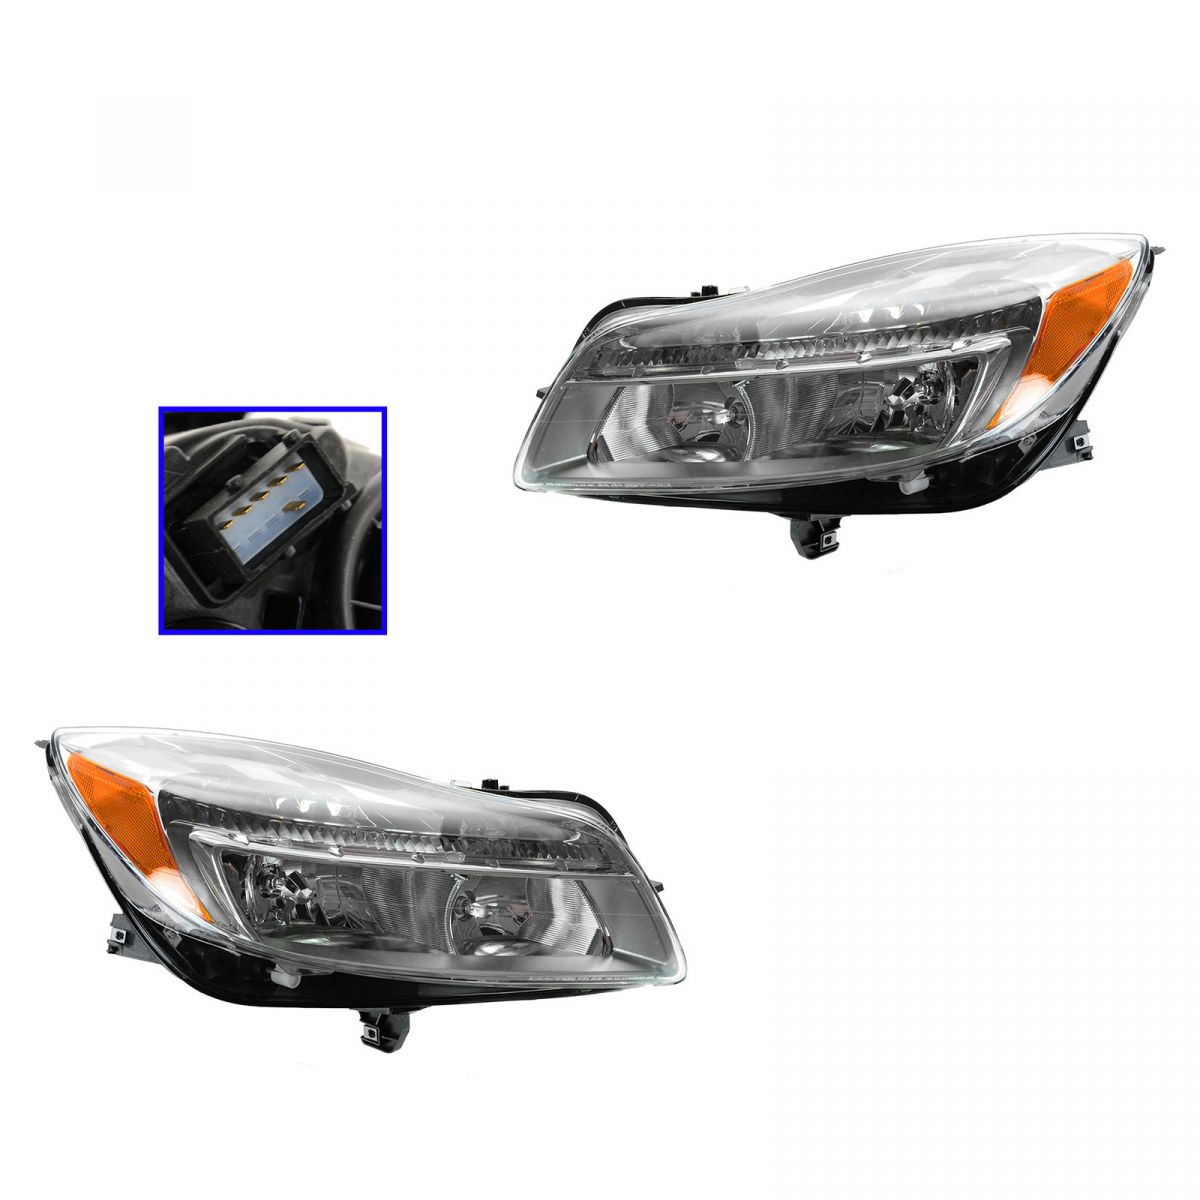 hight resolution of headlights headlamps left lh right rh pair set for 11 13 buick regal